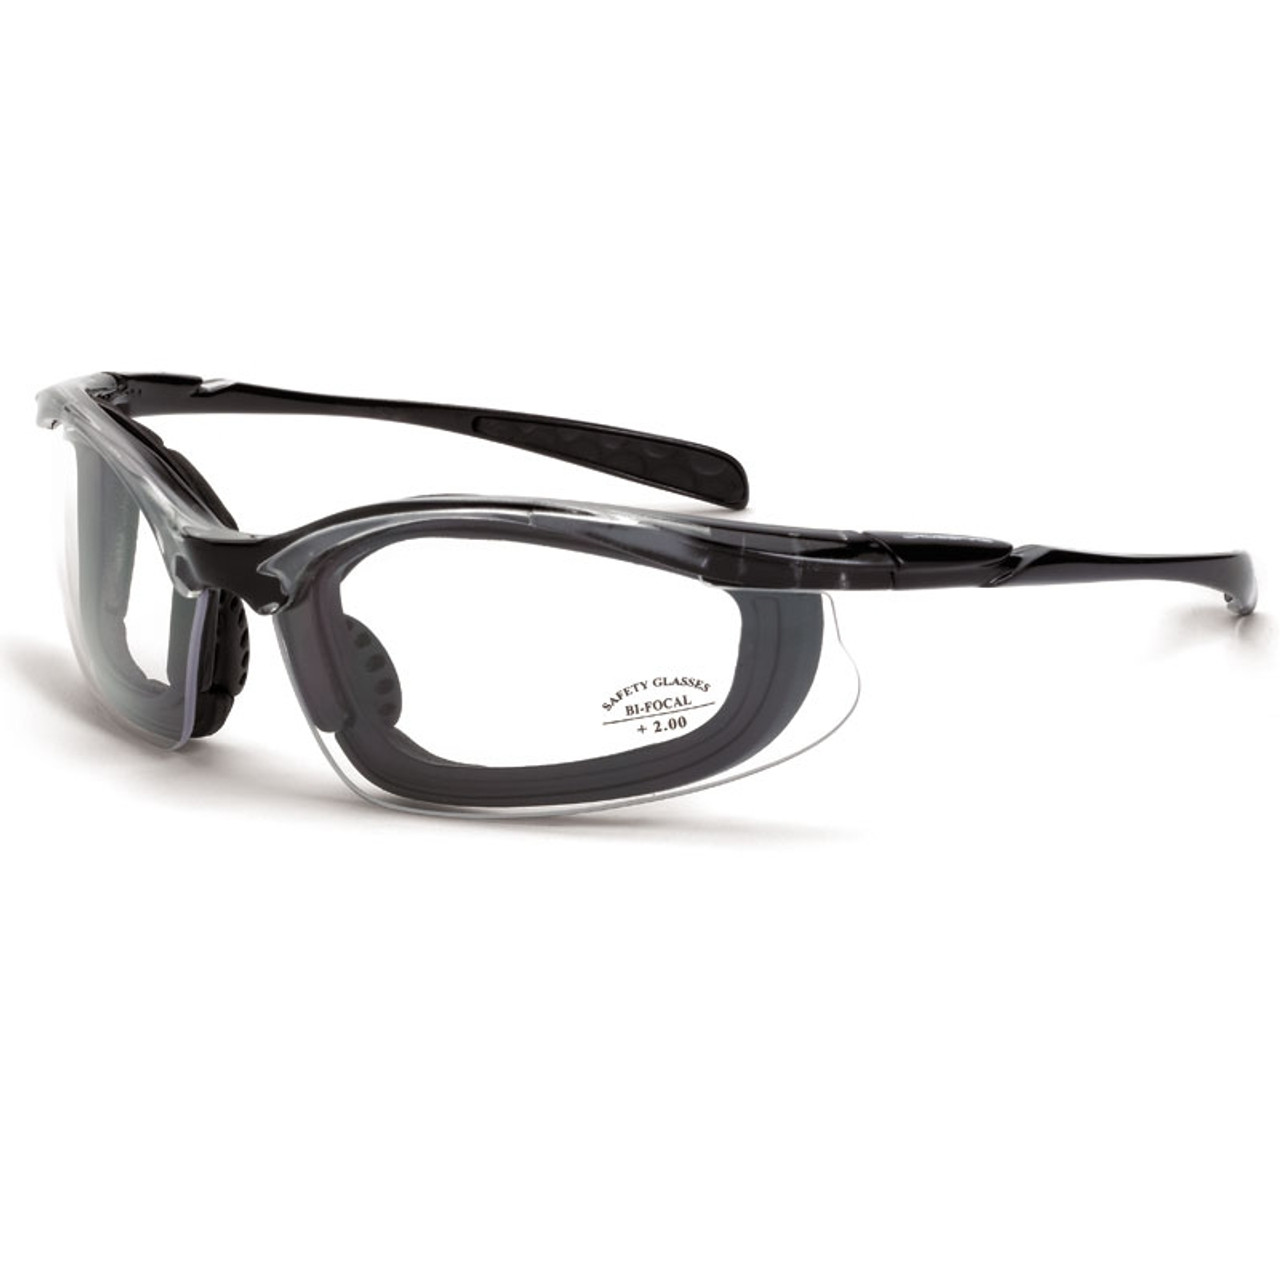 eac2a754e9a Crossfire Concept Bifocal Safety Glasses - Box of 12 - Concept-Readers